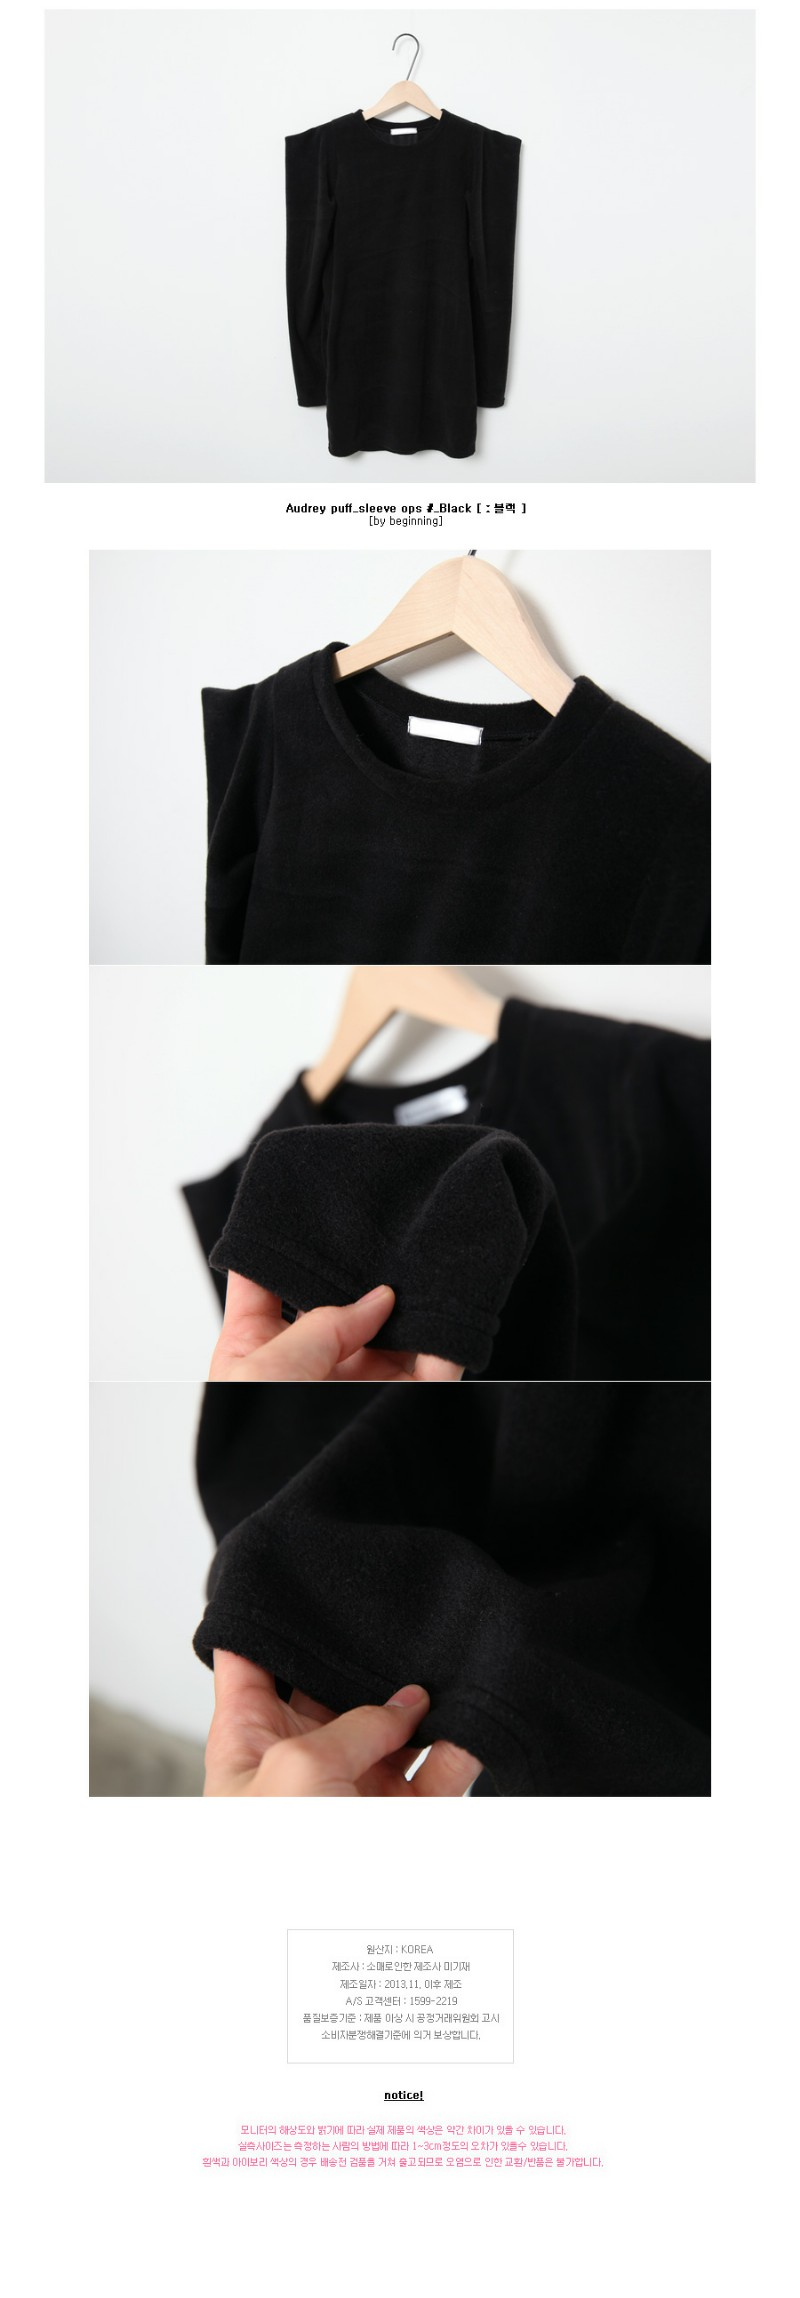 Audrey puff_sleeve ops